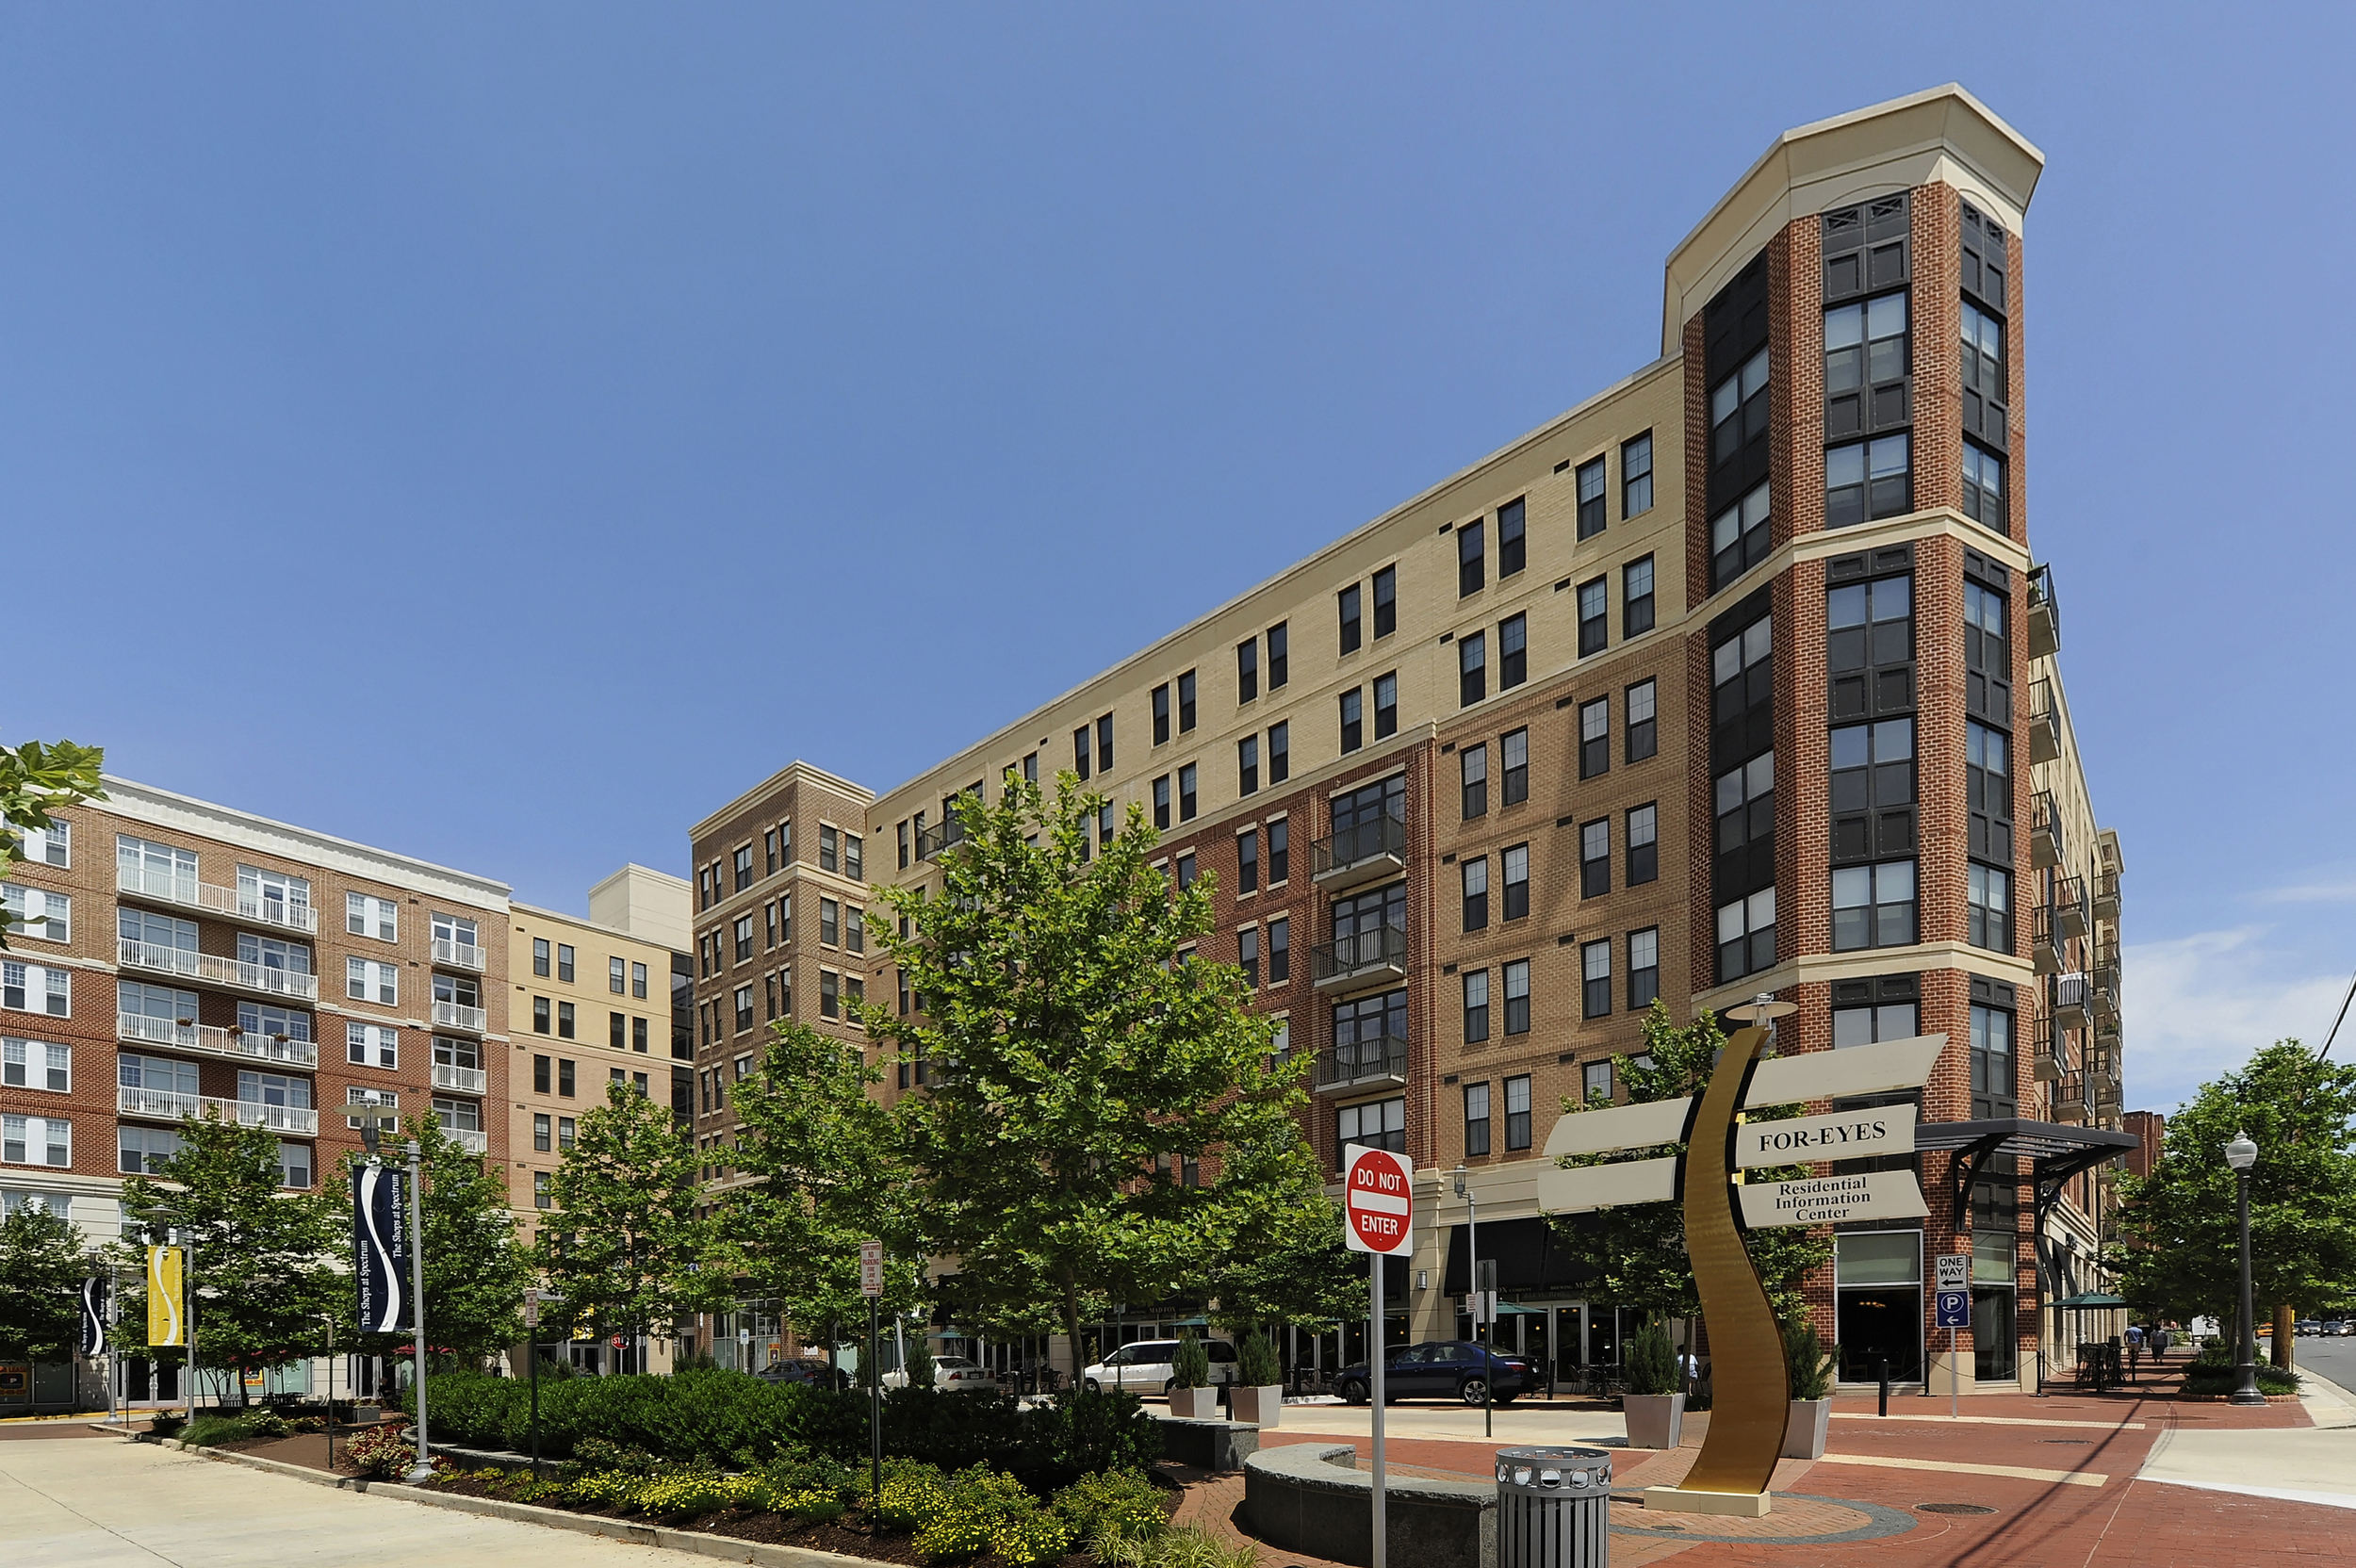 The Spectrum Condo is located at 444 W. Broad Street in Falls Church, VA